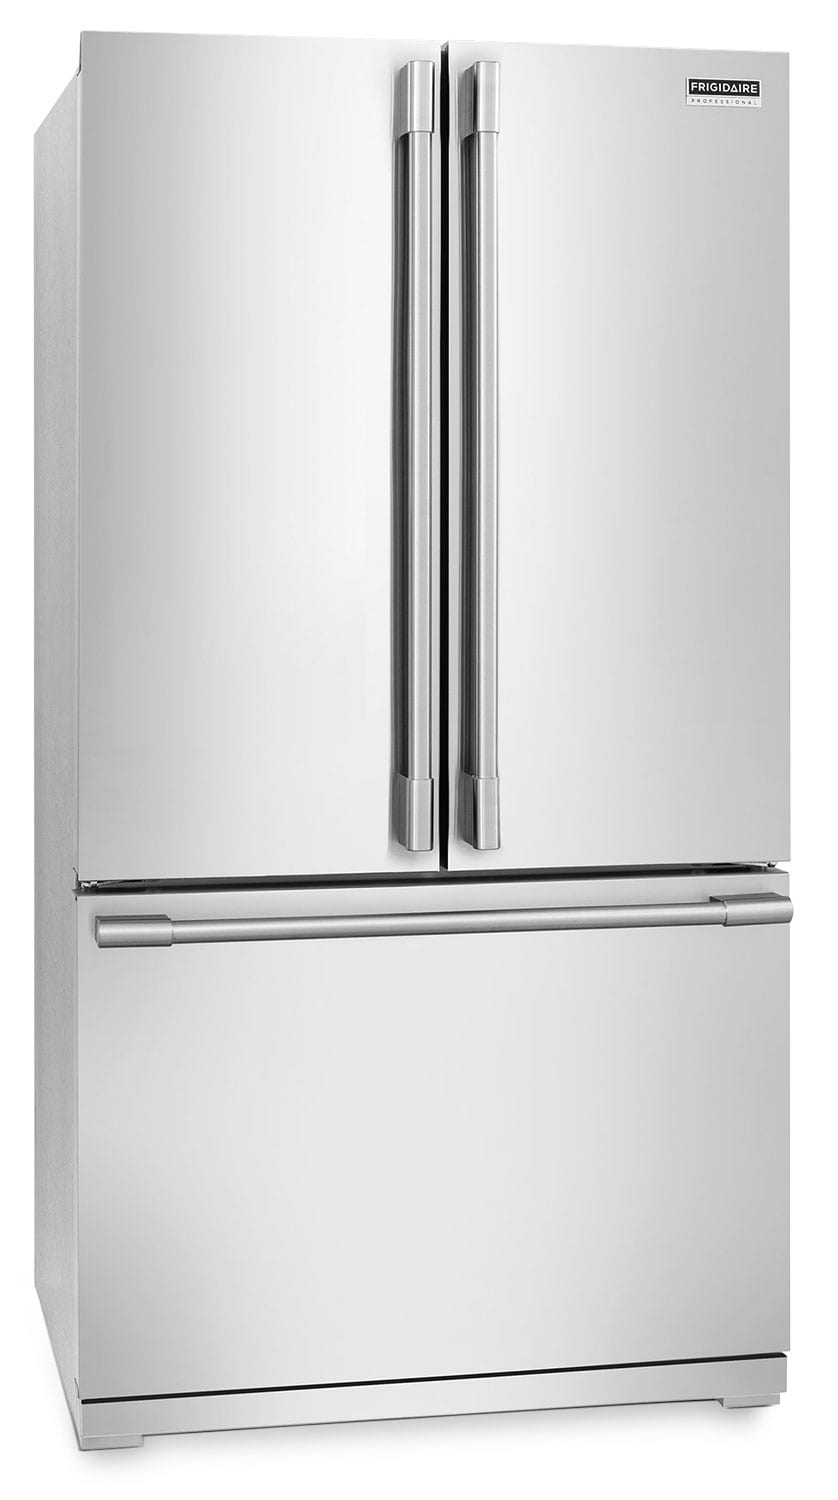 Refrigerators and Freezers - Frigidaire Professional Counter-Depth French-Door Refrigerator (22.6 Cu. Ft.) - FPBG2277RF